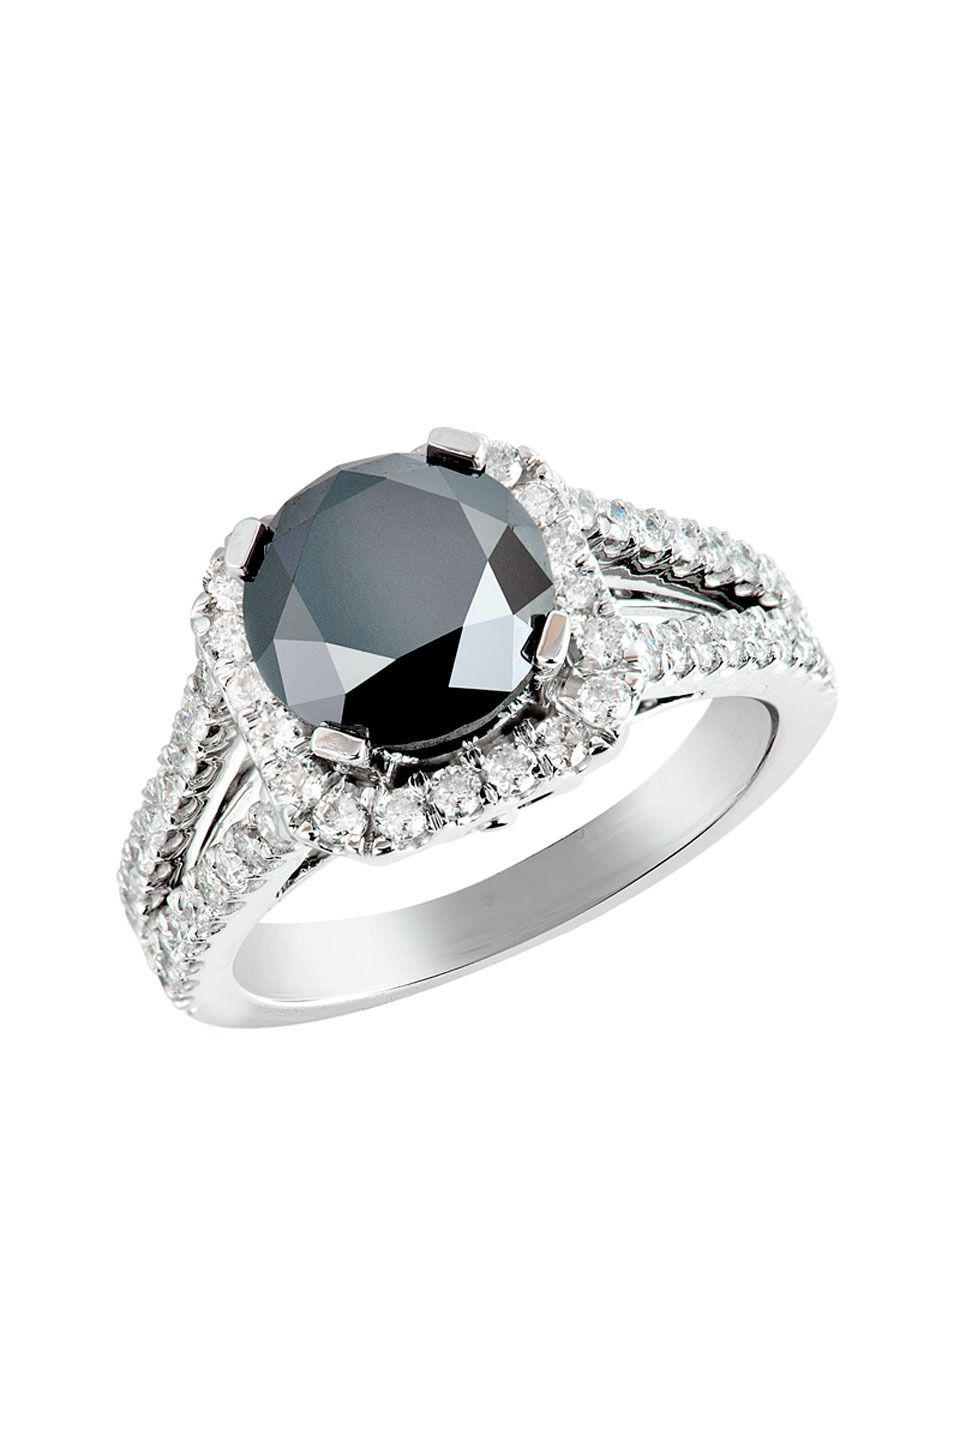 Ct diamond and k white gold engagement ring a girl can dream